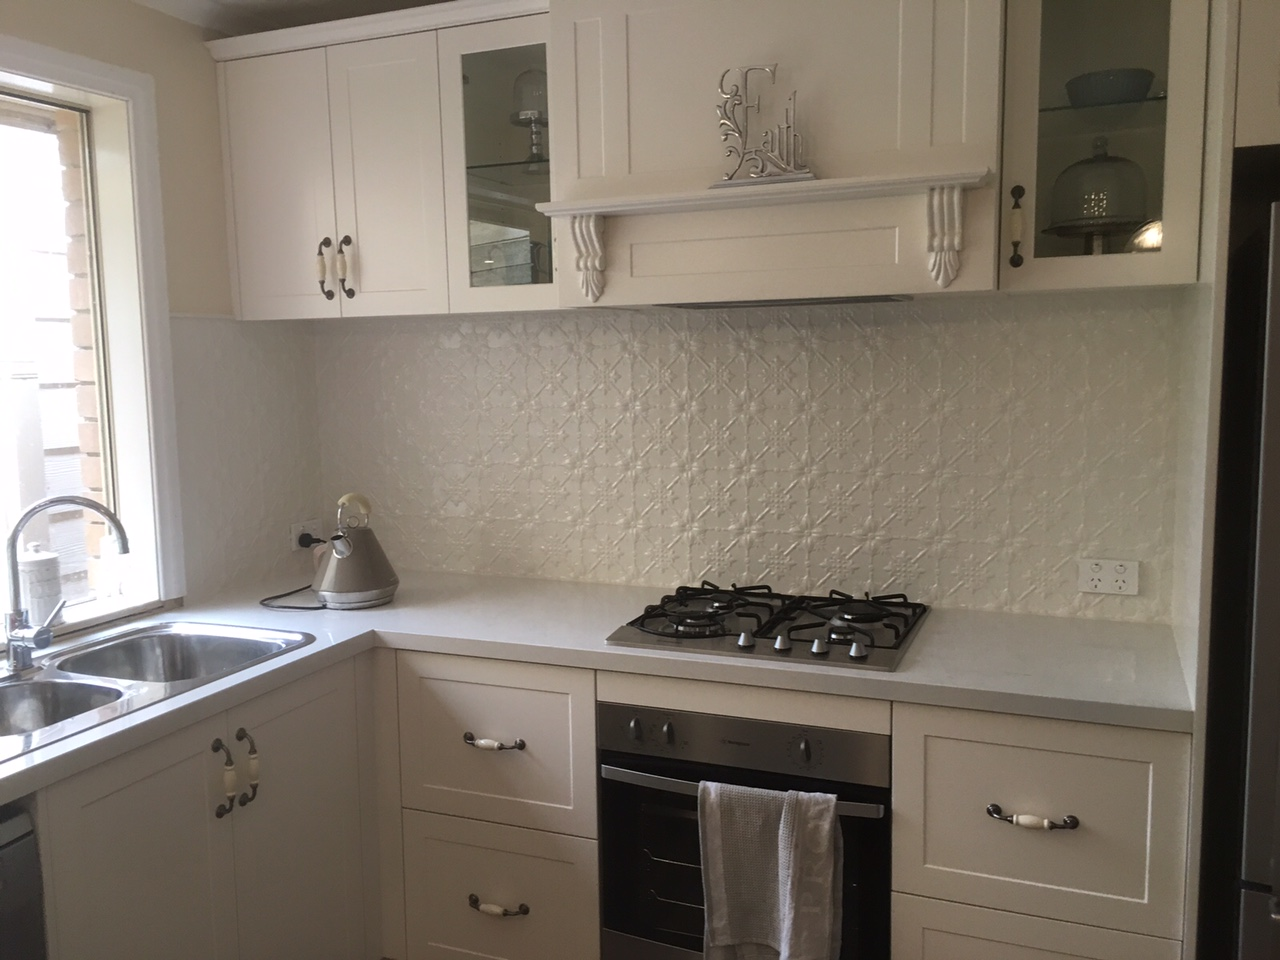 SNOW FLAKE PRESSED METAL SPLASHBACK - WHITE